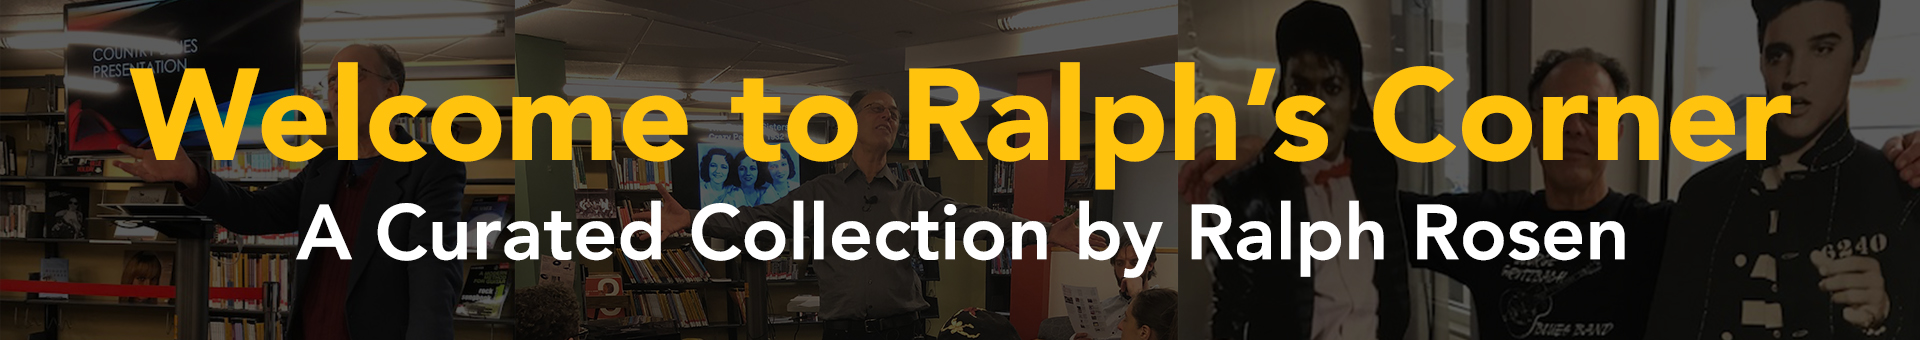 Welcome to Ralph's Corner: a curated collection by Ralph Rosen